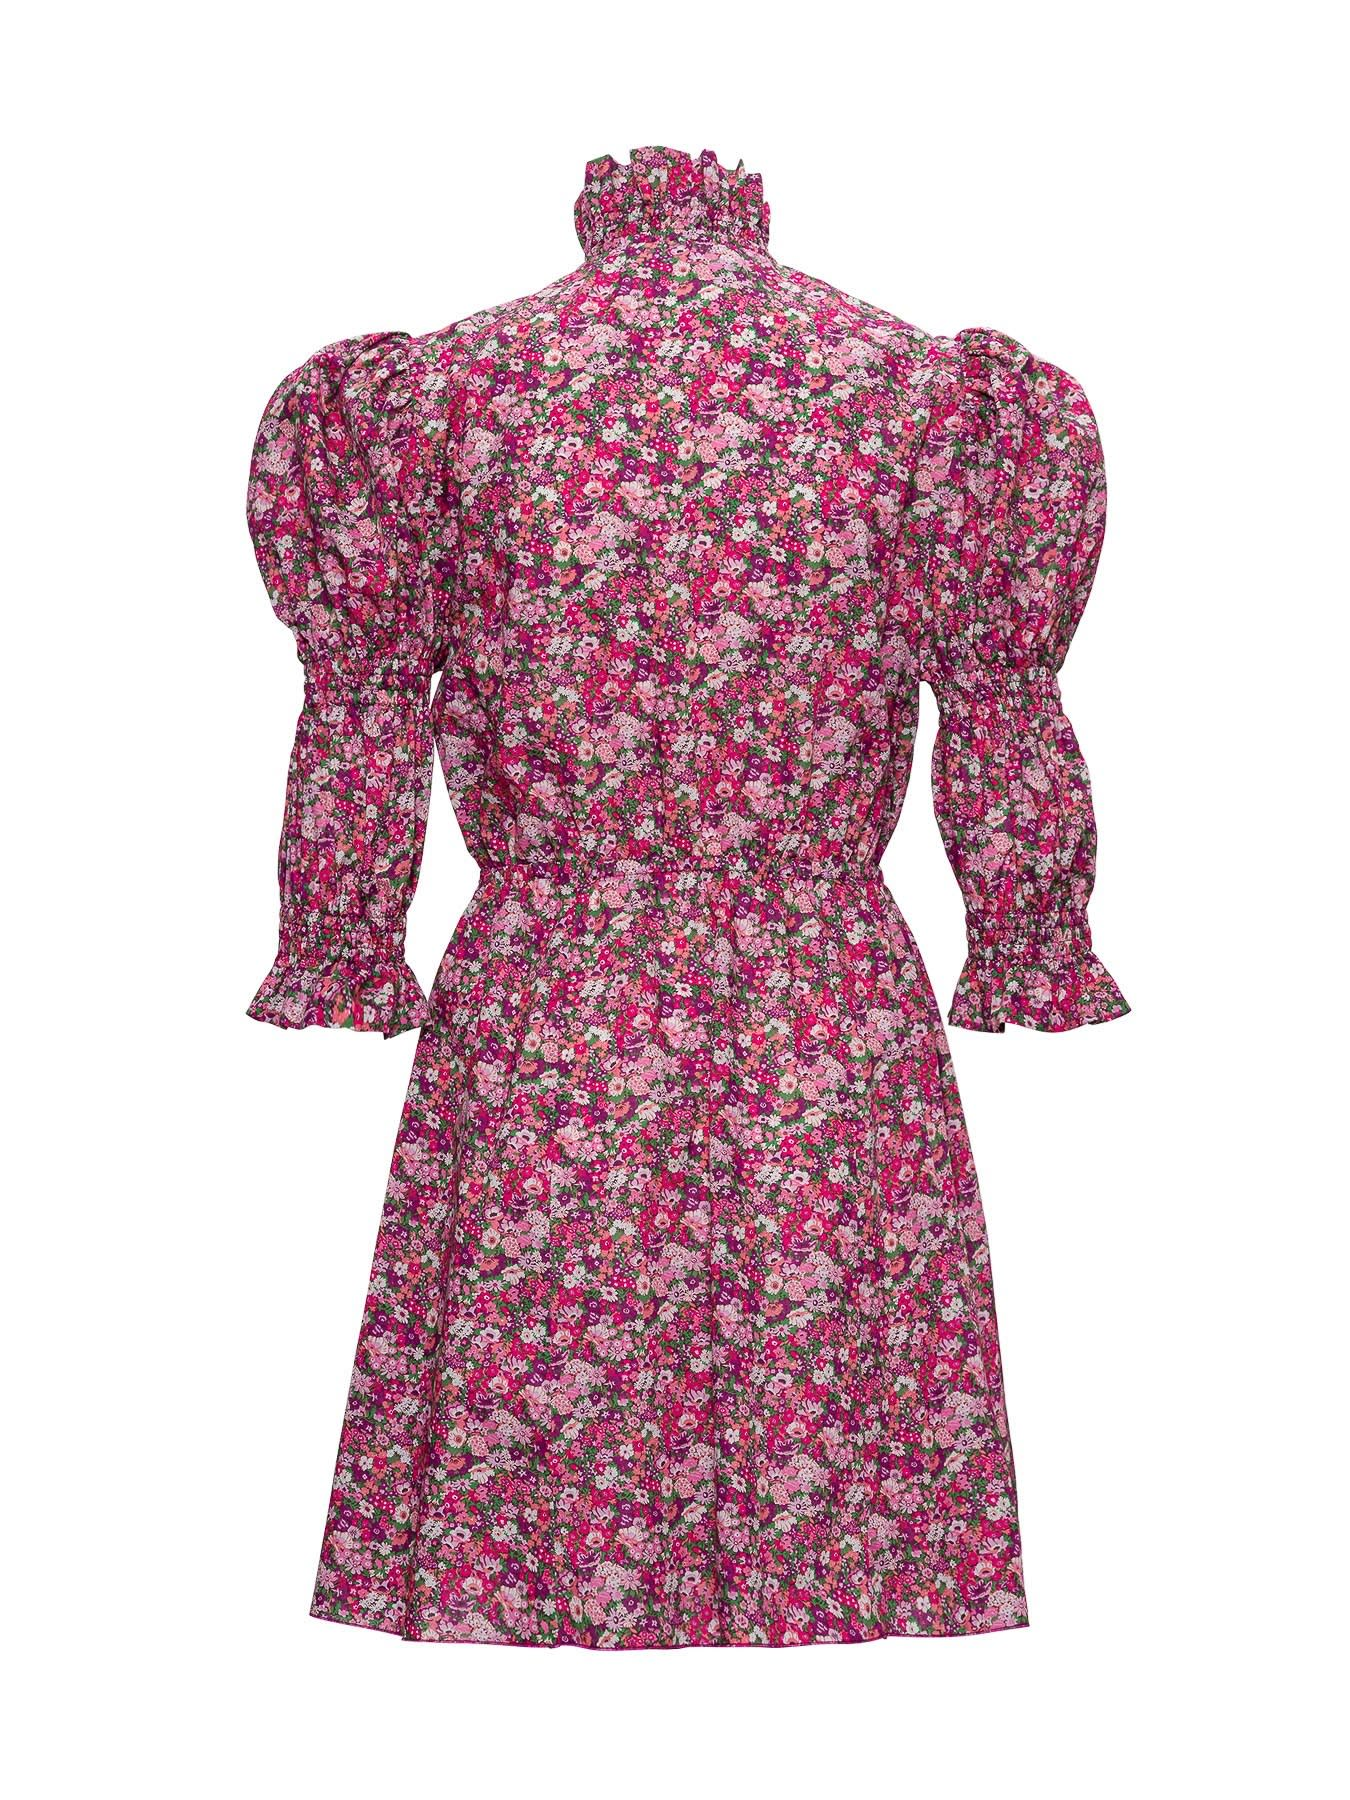 Philosophy di Lorenzo Serafini Floral Dress With Puffed Shoulders